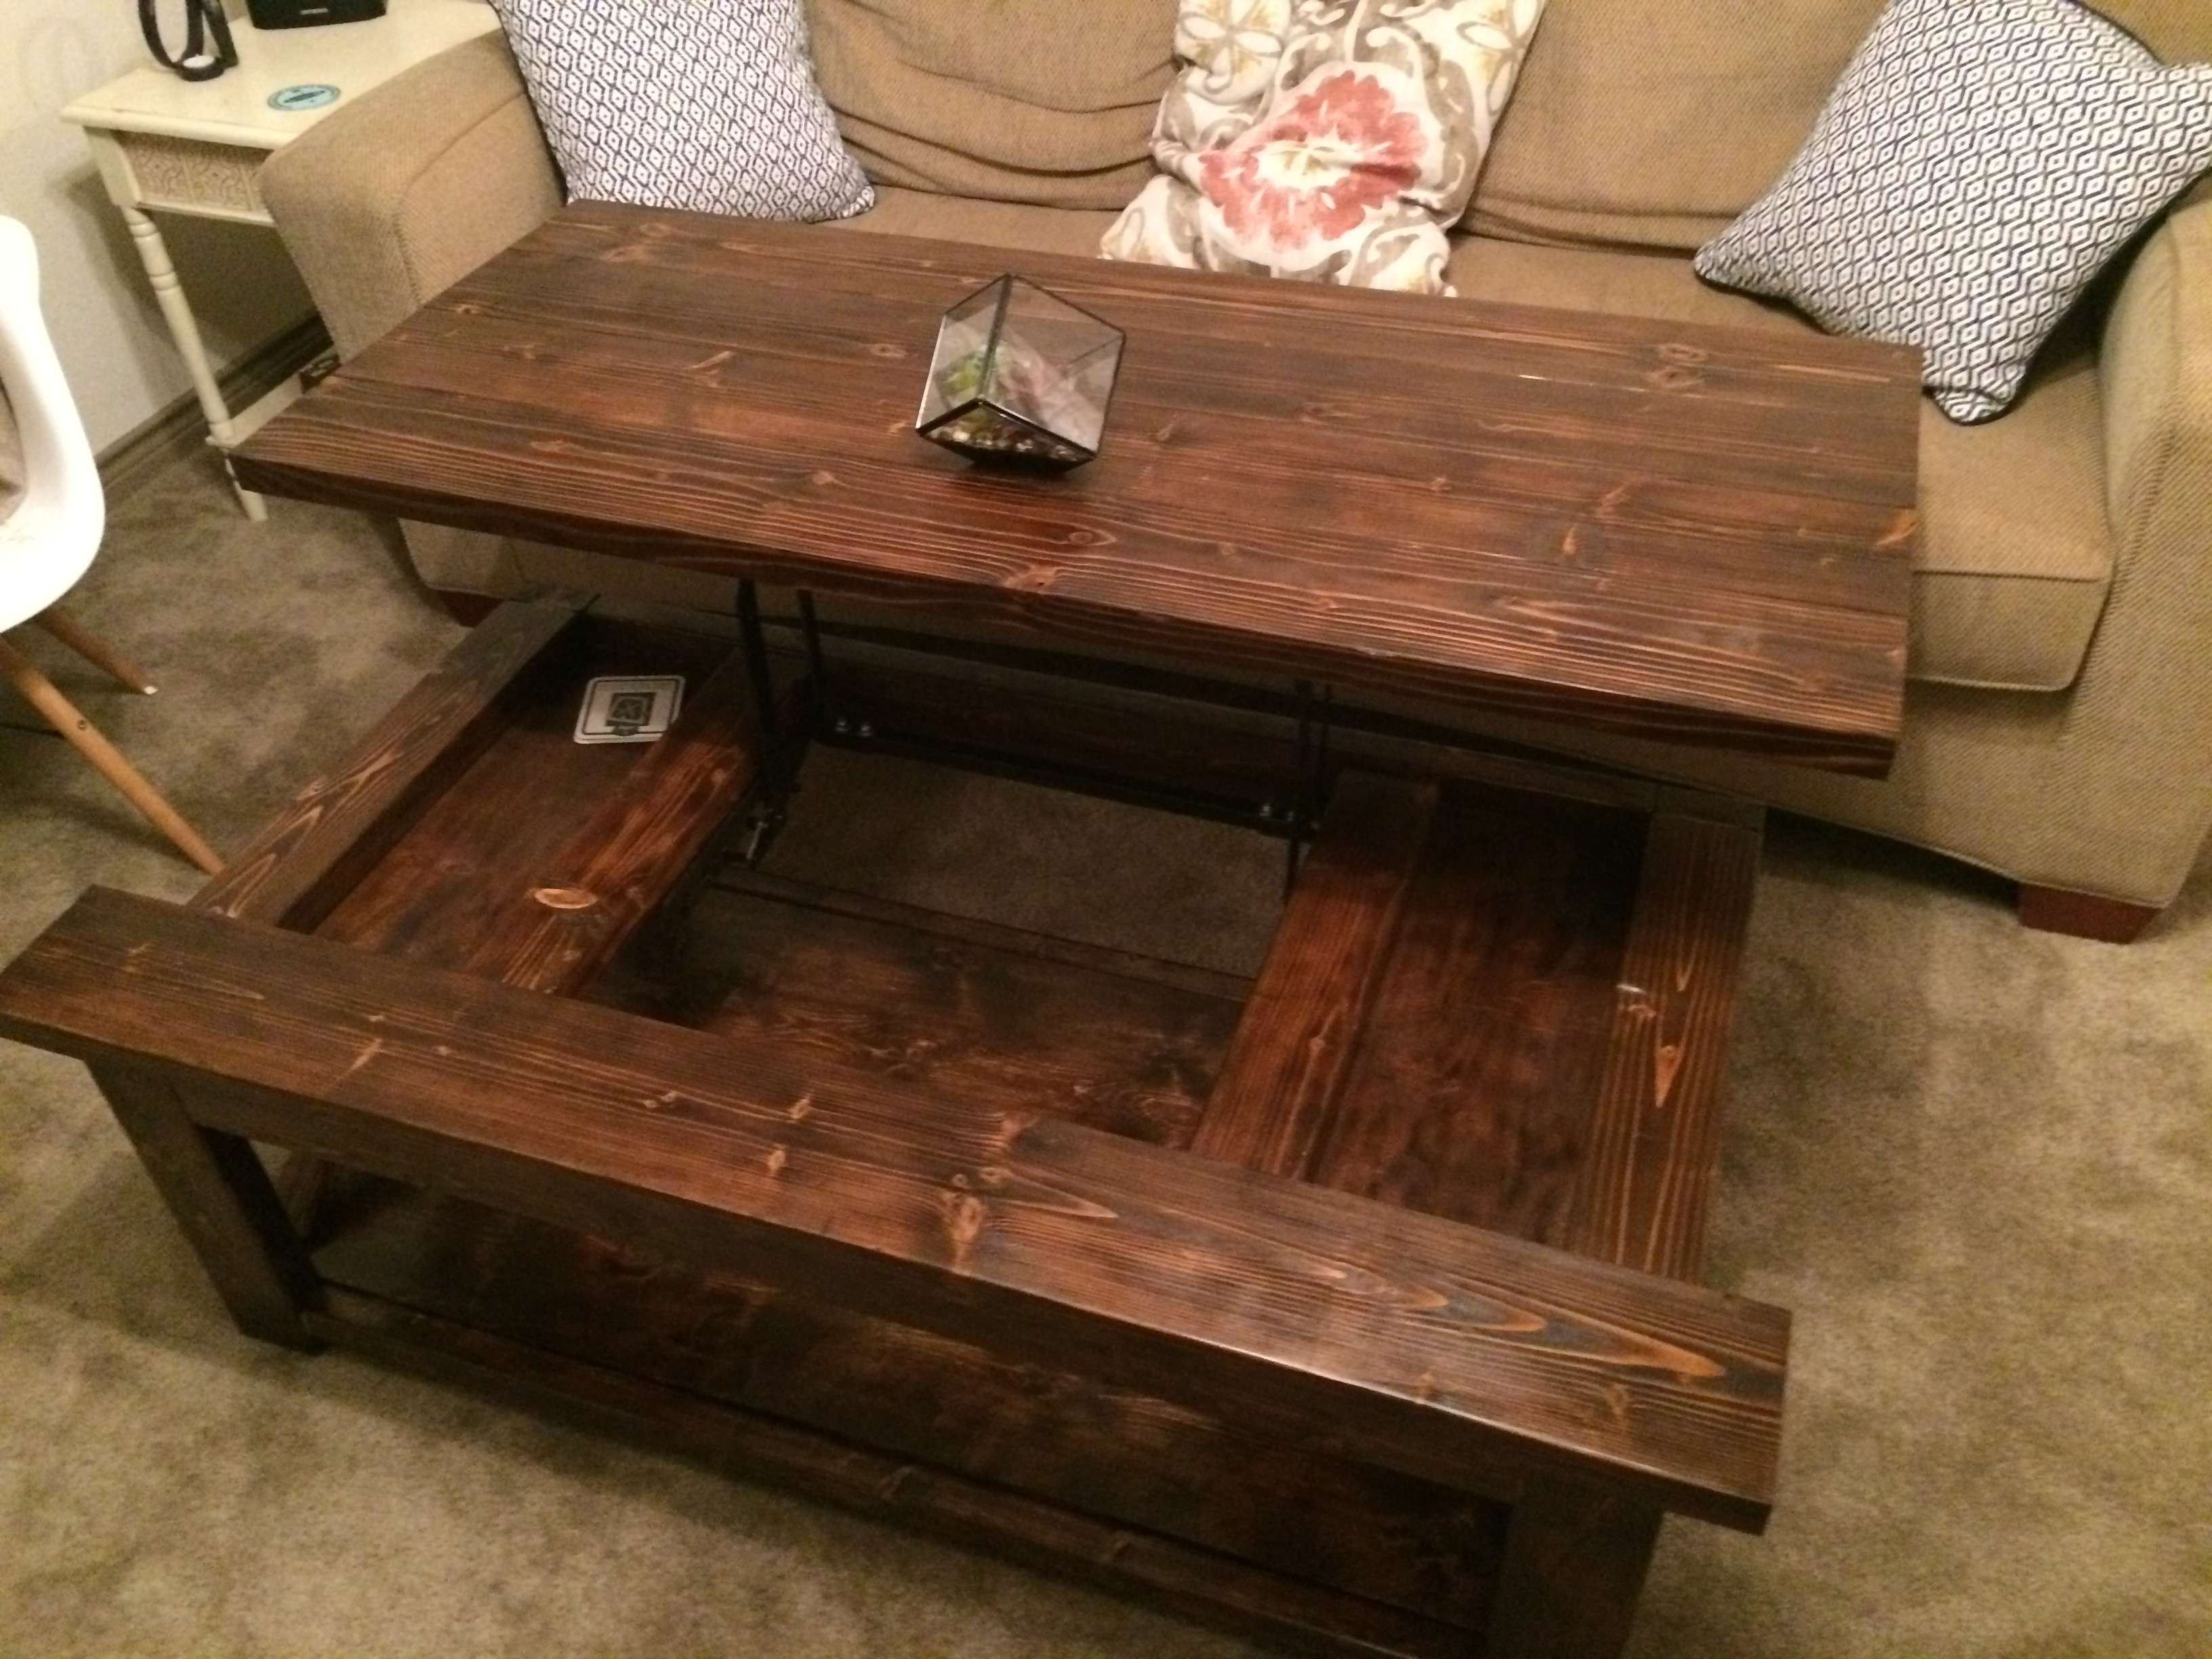 Diy Lift Top Coffee Table – Rustic X Style – Diy Projects (View 9 of 20)